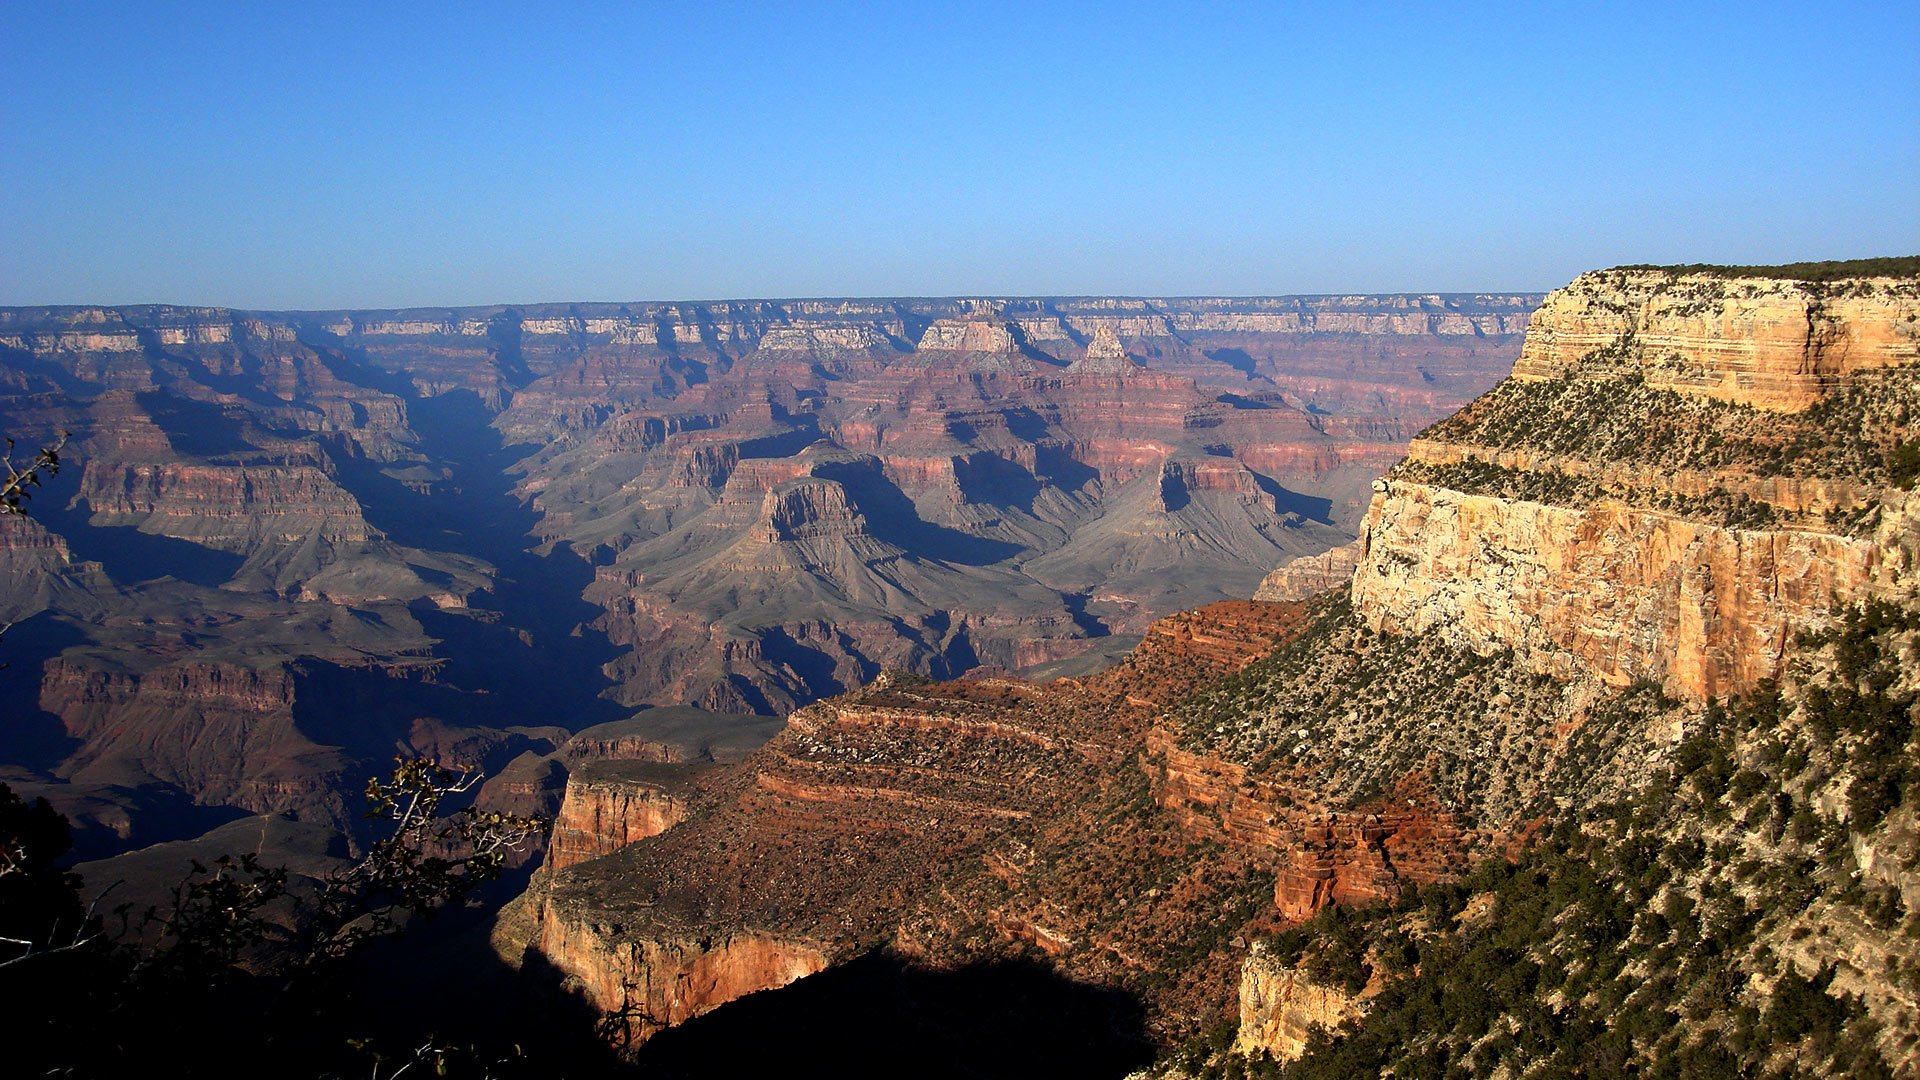 grand canyon helicopter tours prices with North Canyon With Jeep Excursion on 3 Day Las Vegas Grand Canyon West Rim Skywalk Chocolate Factory Tour From Los Angeles 489 2344 further Private Helicopter Tour Iceland also Private Jet Rental Cheap besides Tours in addition Jet Plane Rental Rates.